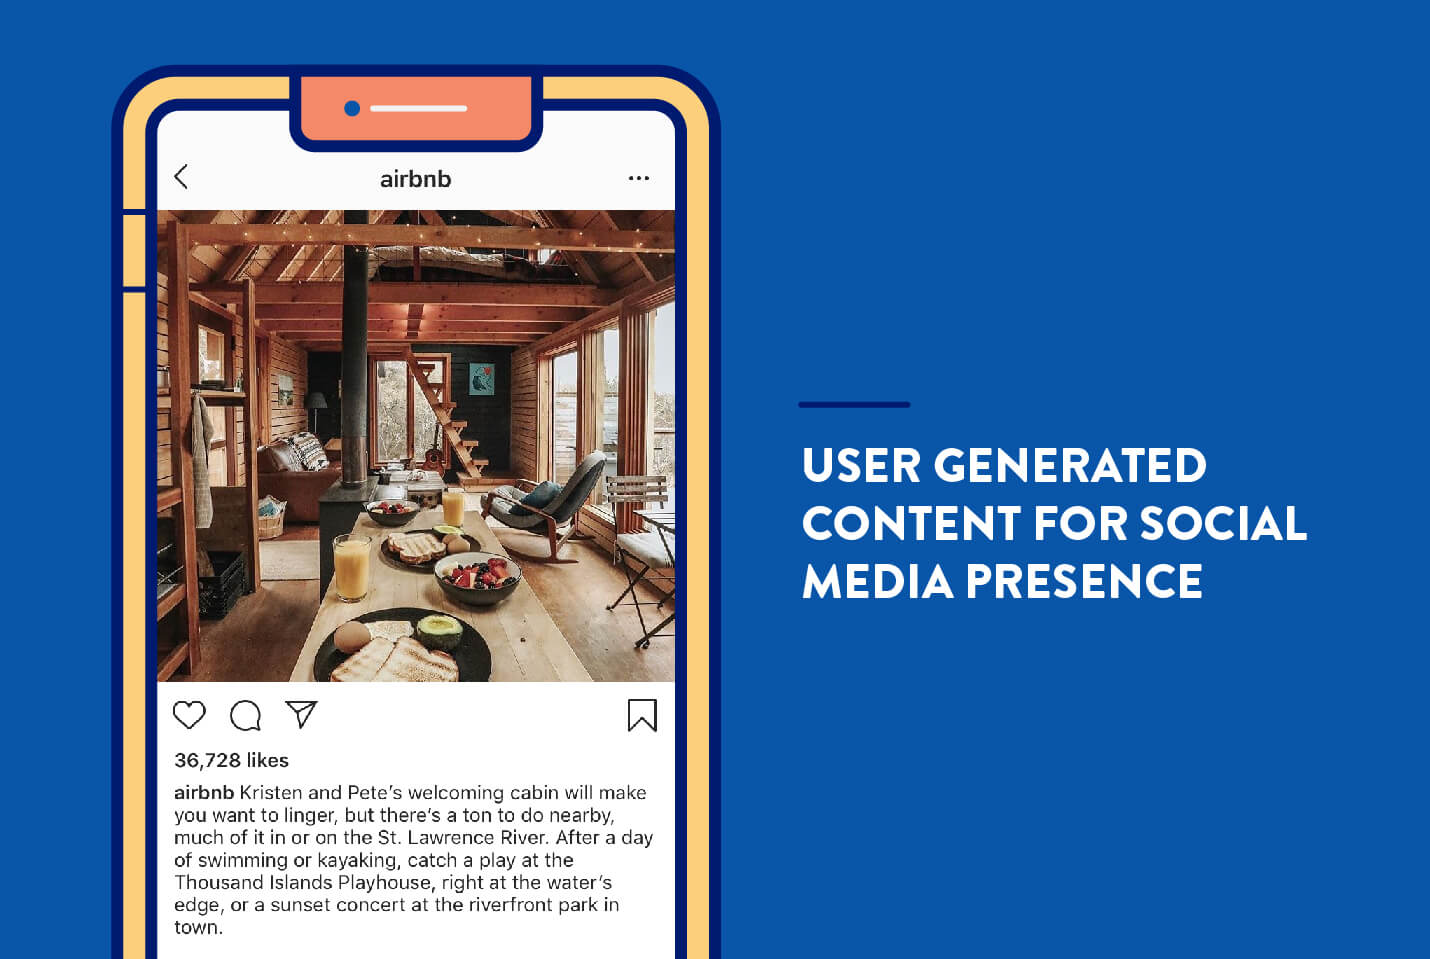 How to market an app using user generated content for social media example from Airbnb